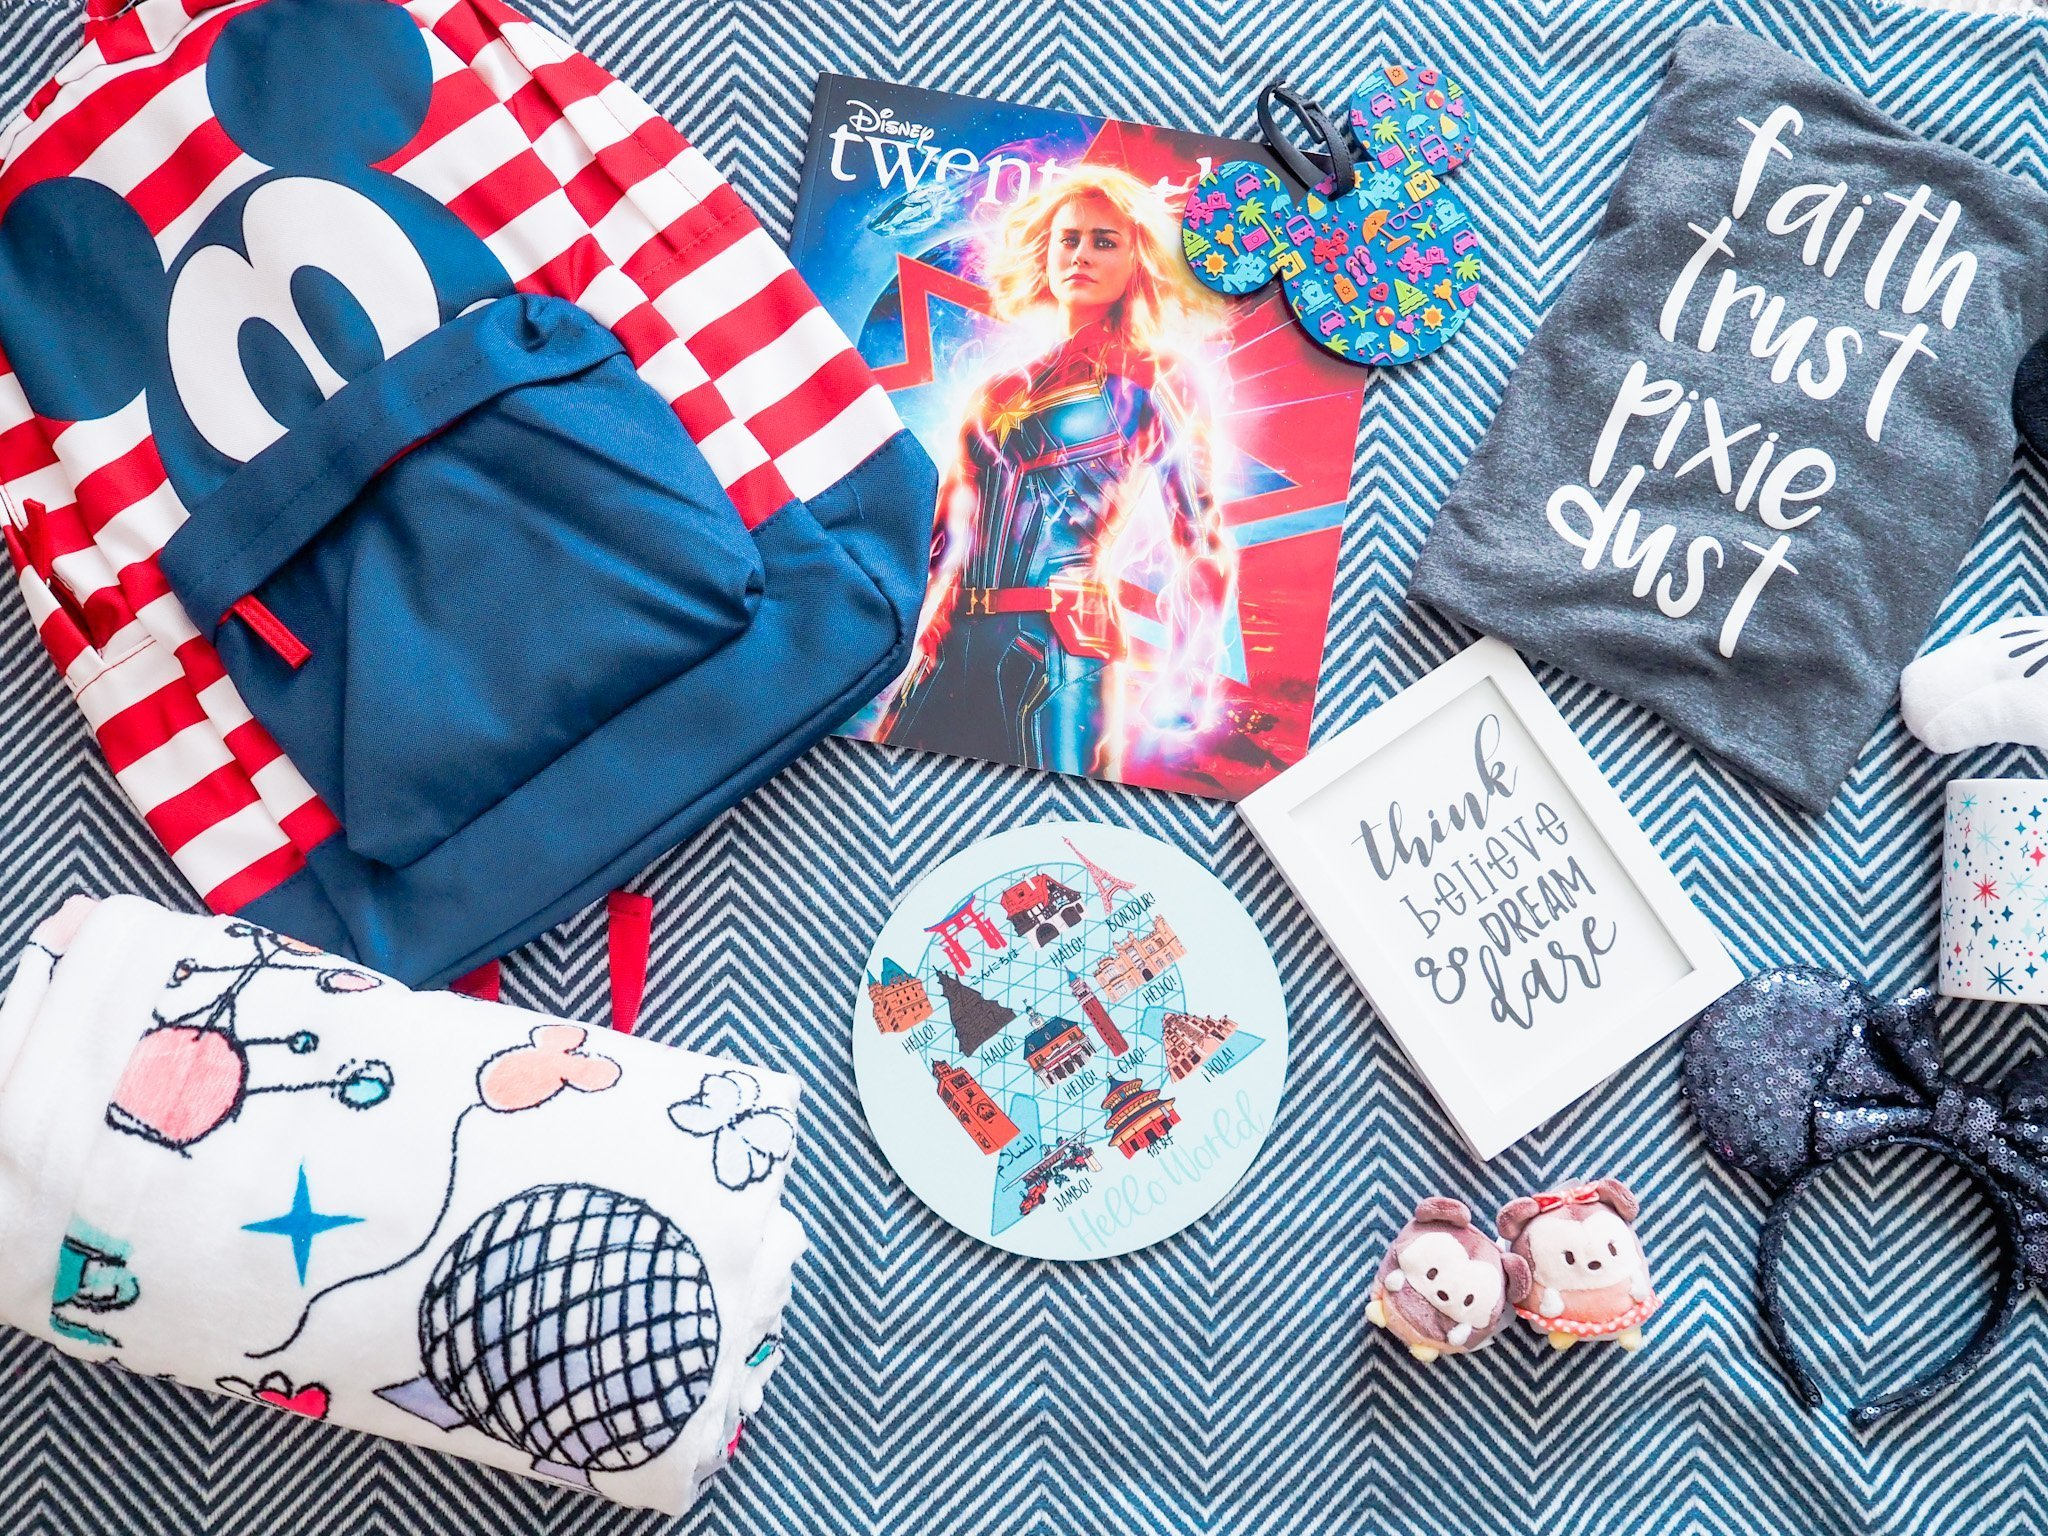 Disney Gifts For Graduation